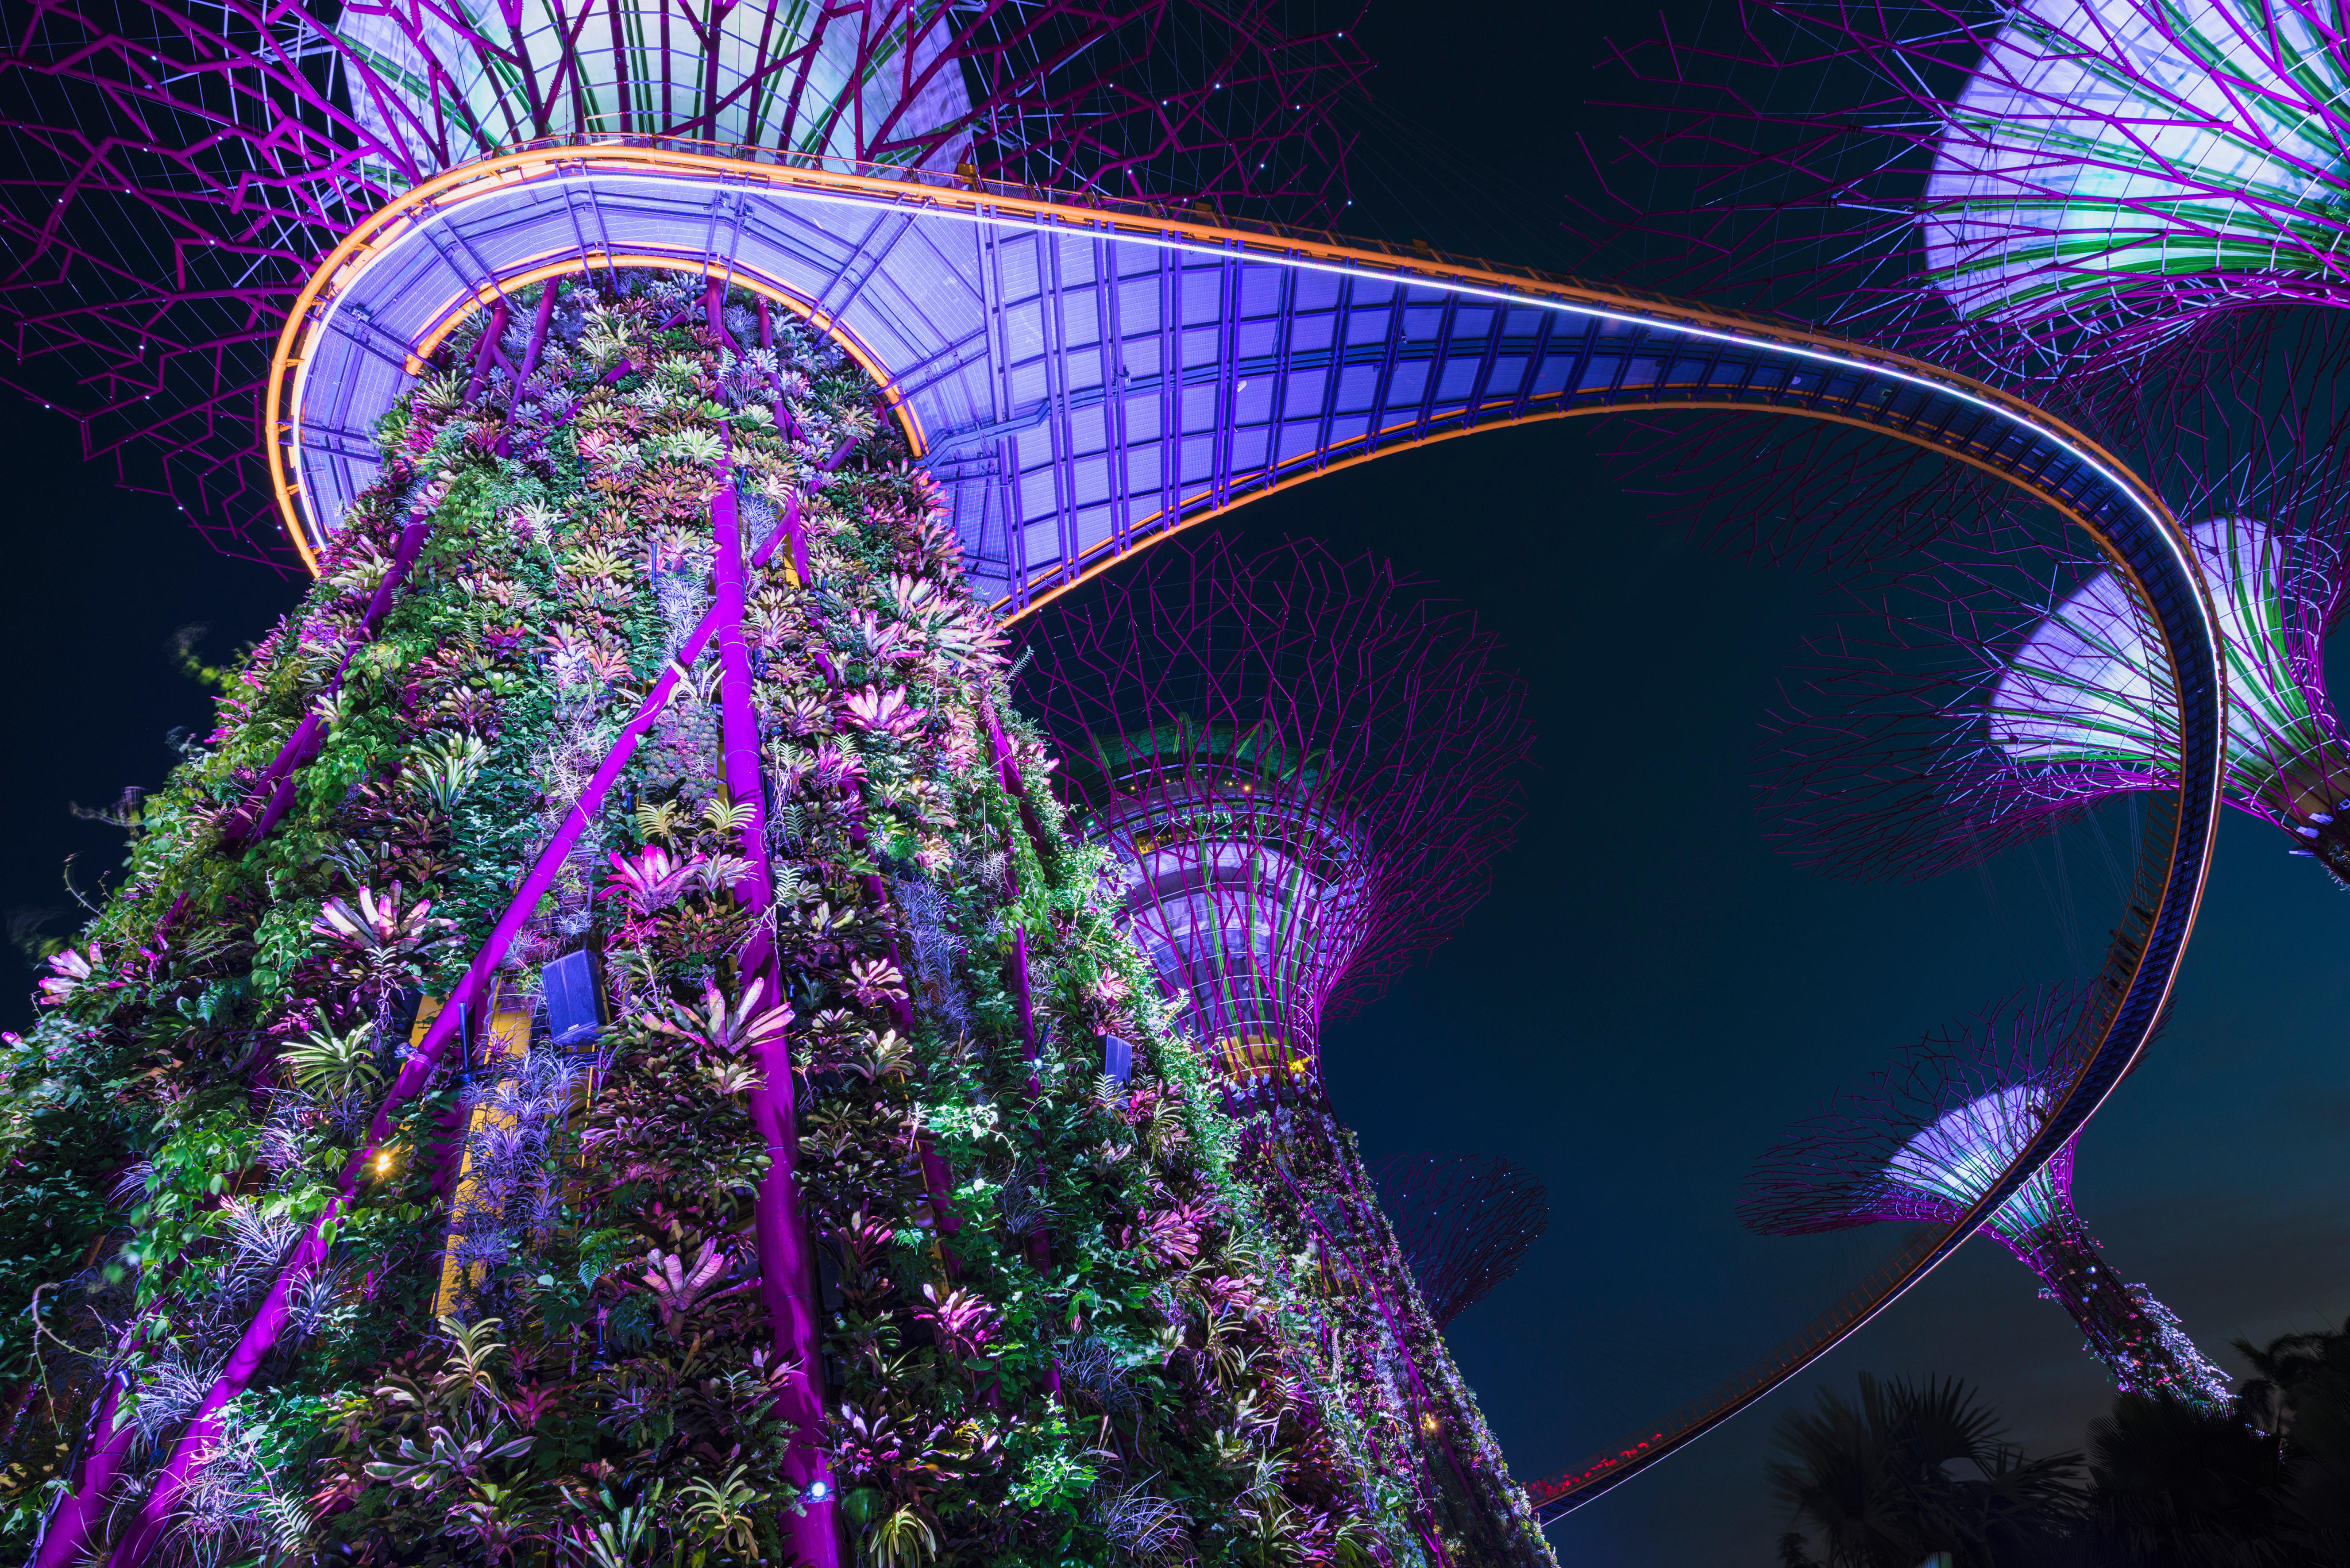 Gardens by the Bay at night, Singapore, Southeast Asia © Robert Harding World Imagery / Alamy